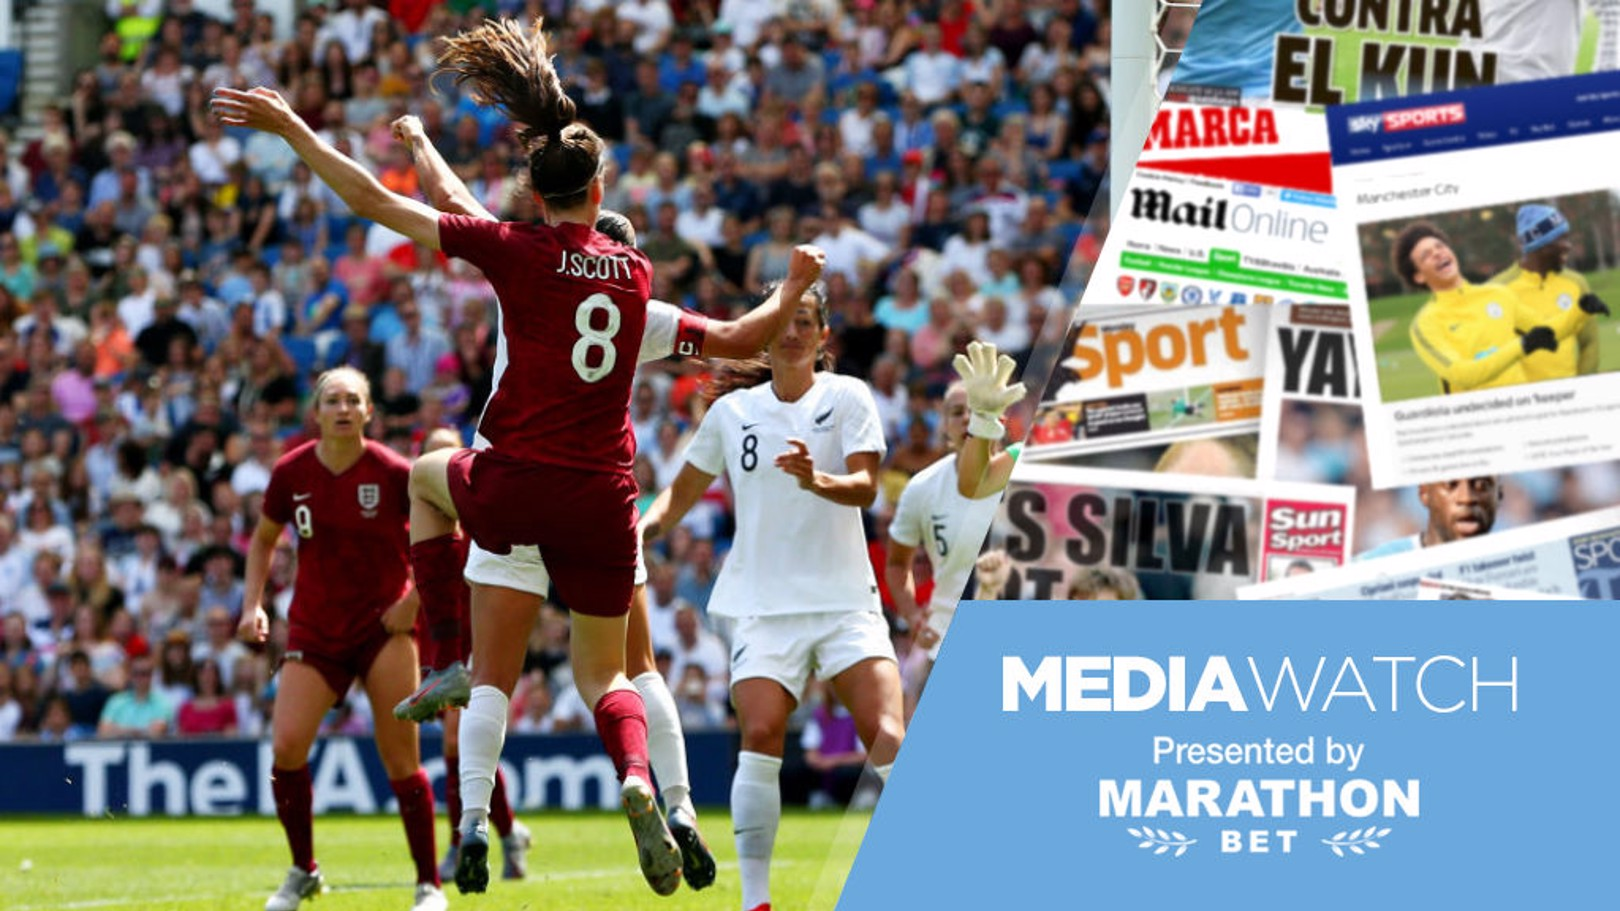 MEDIA WATCH: England and Scotland go head-to-head at the FIFA Women's World Cup later today